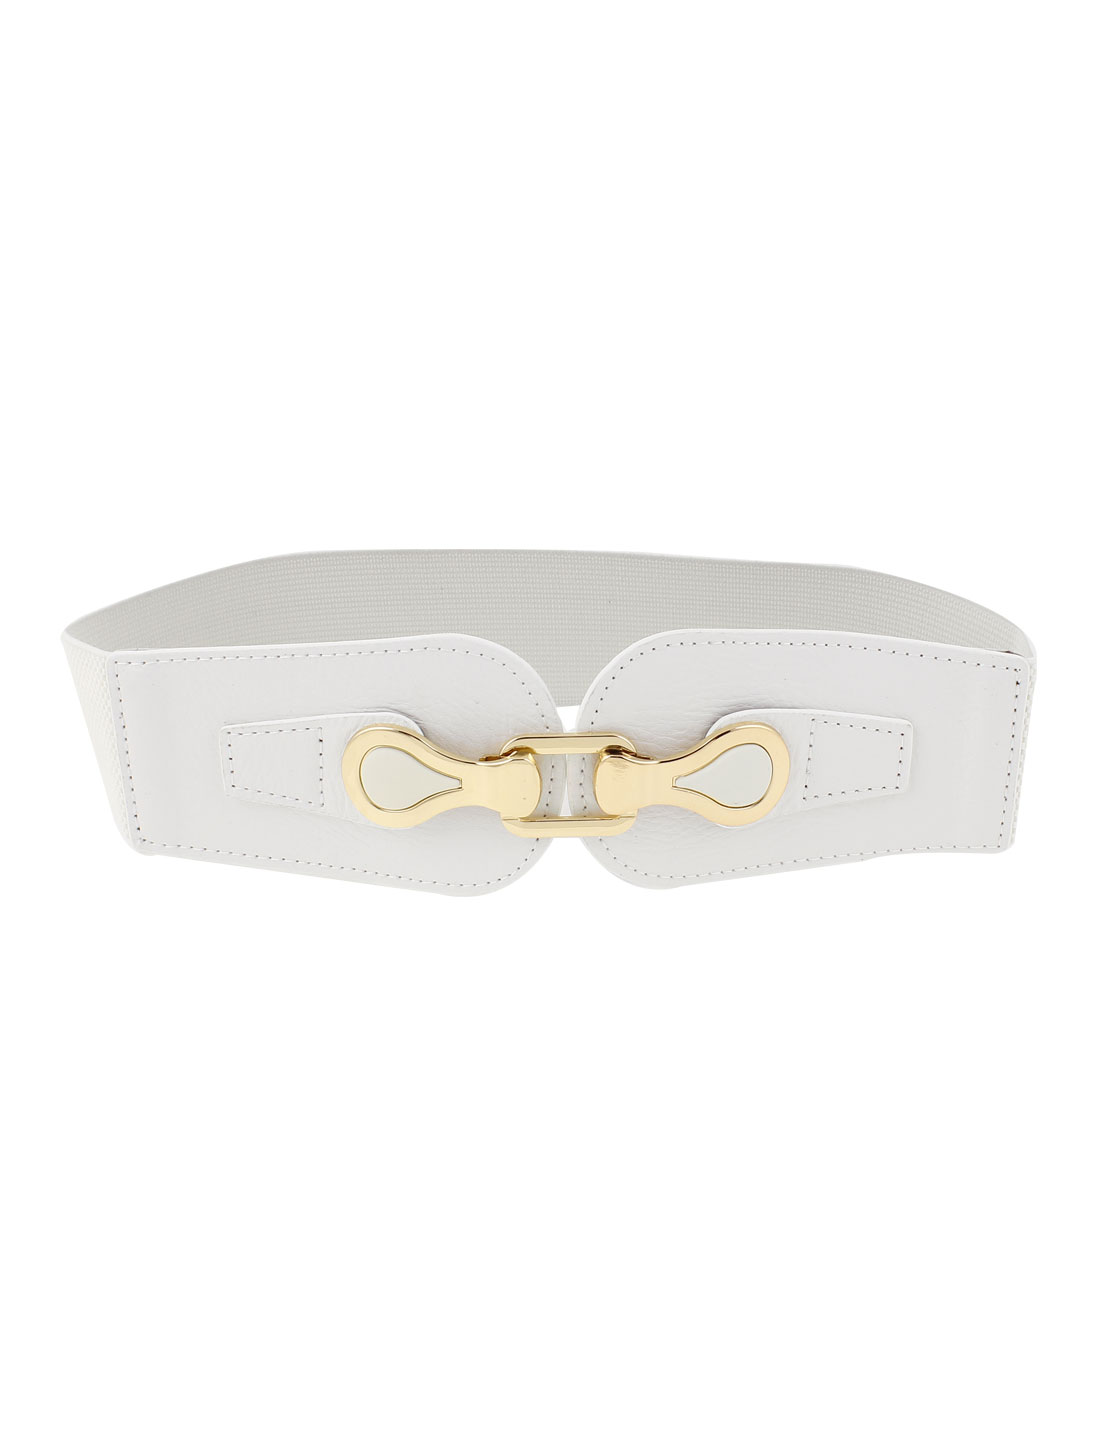 Lady Gold Tone Metal Interlocking Buckle Elastic Cinch Waist Belt White